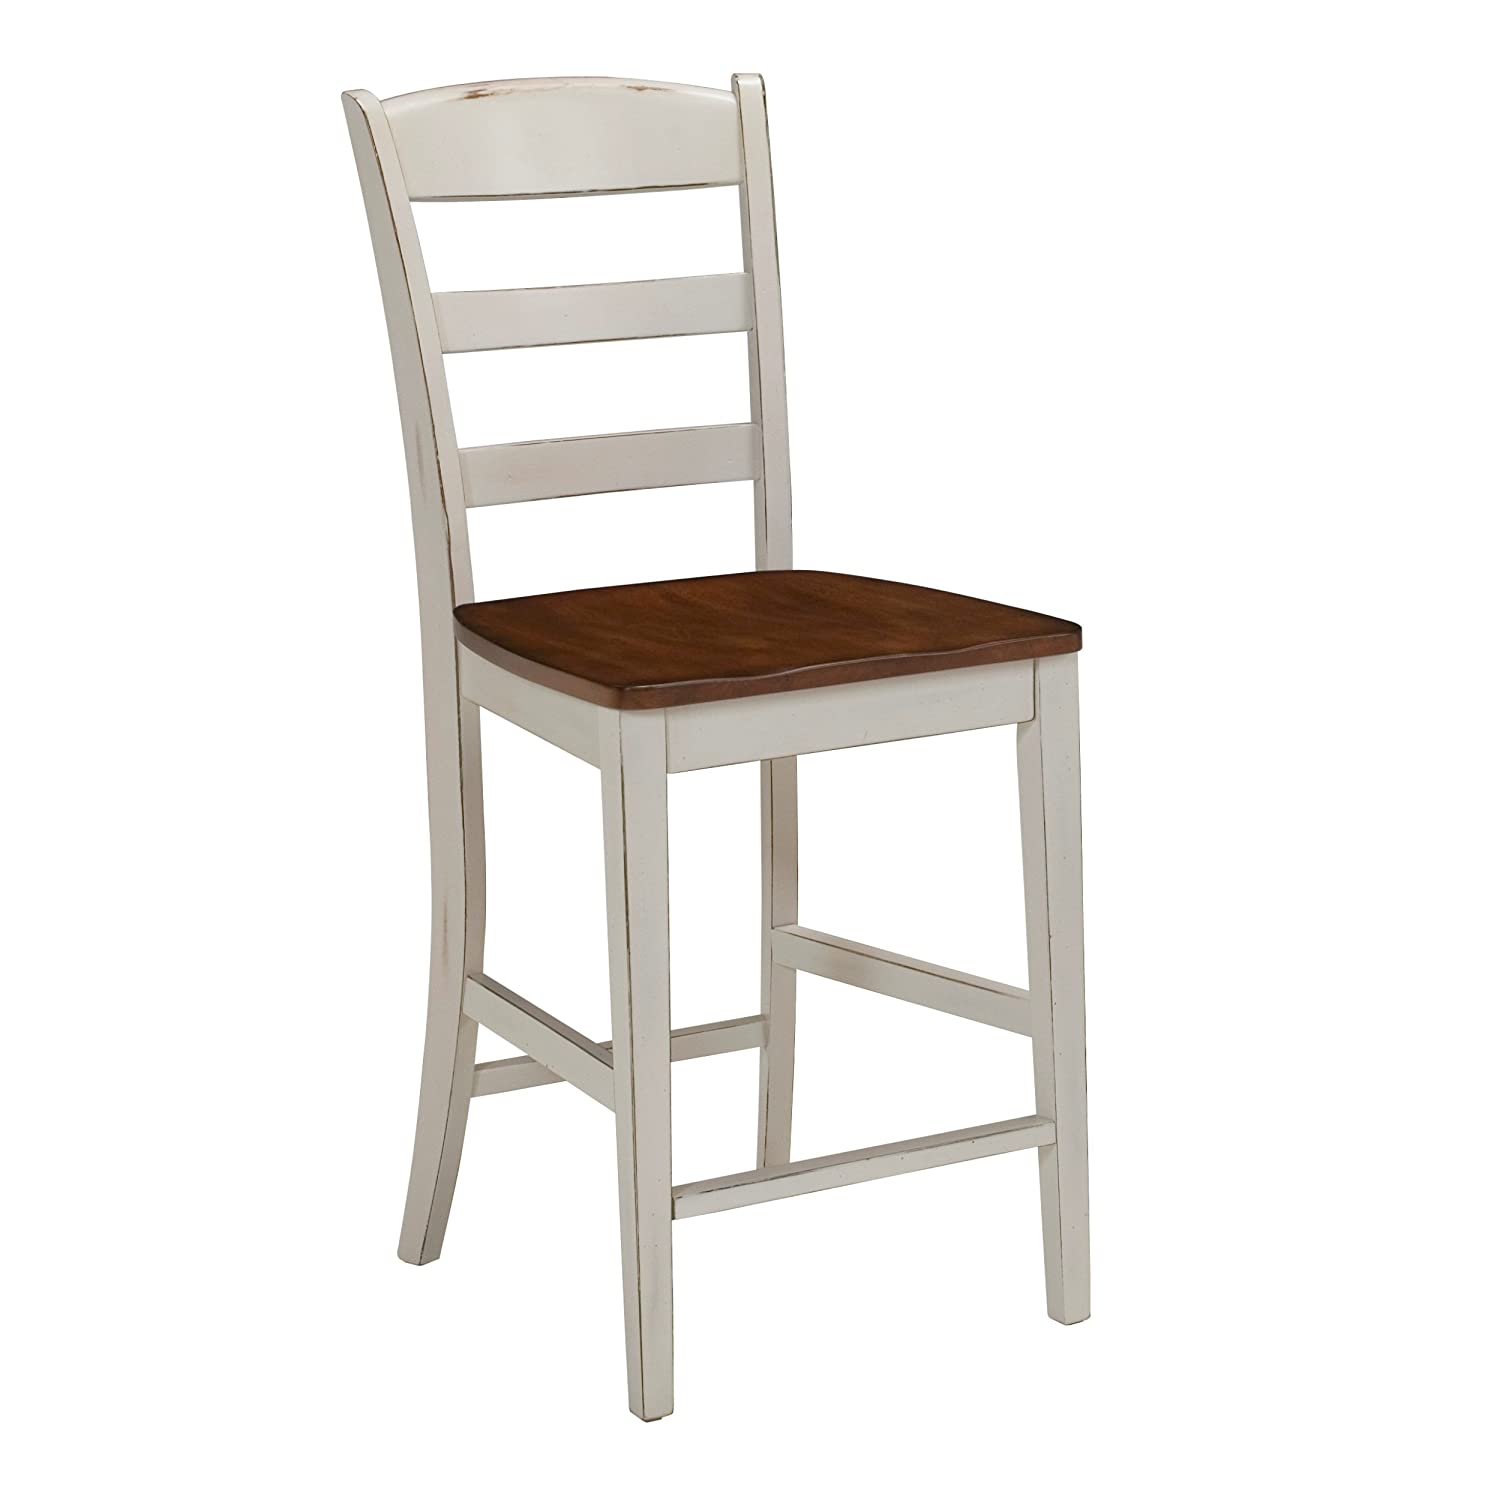 Amazon.com: Home Styles 5020-89 Monarch Stool, Antique White Finish ...